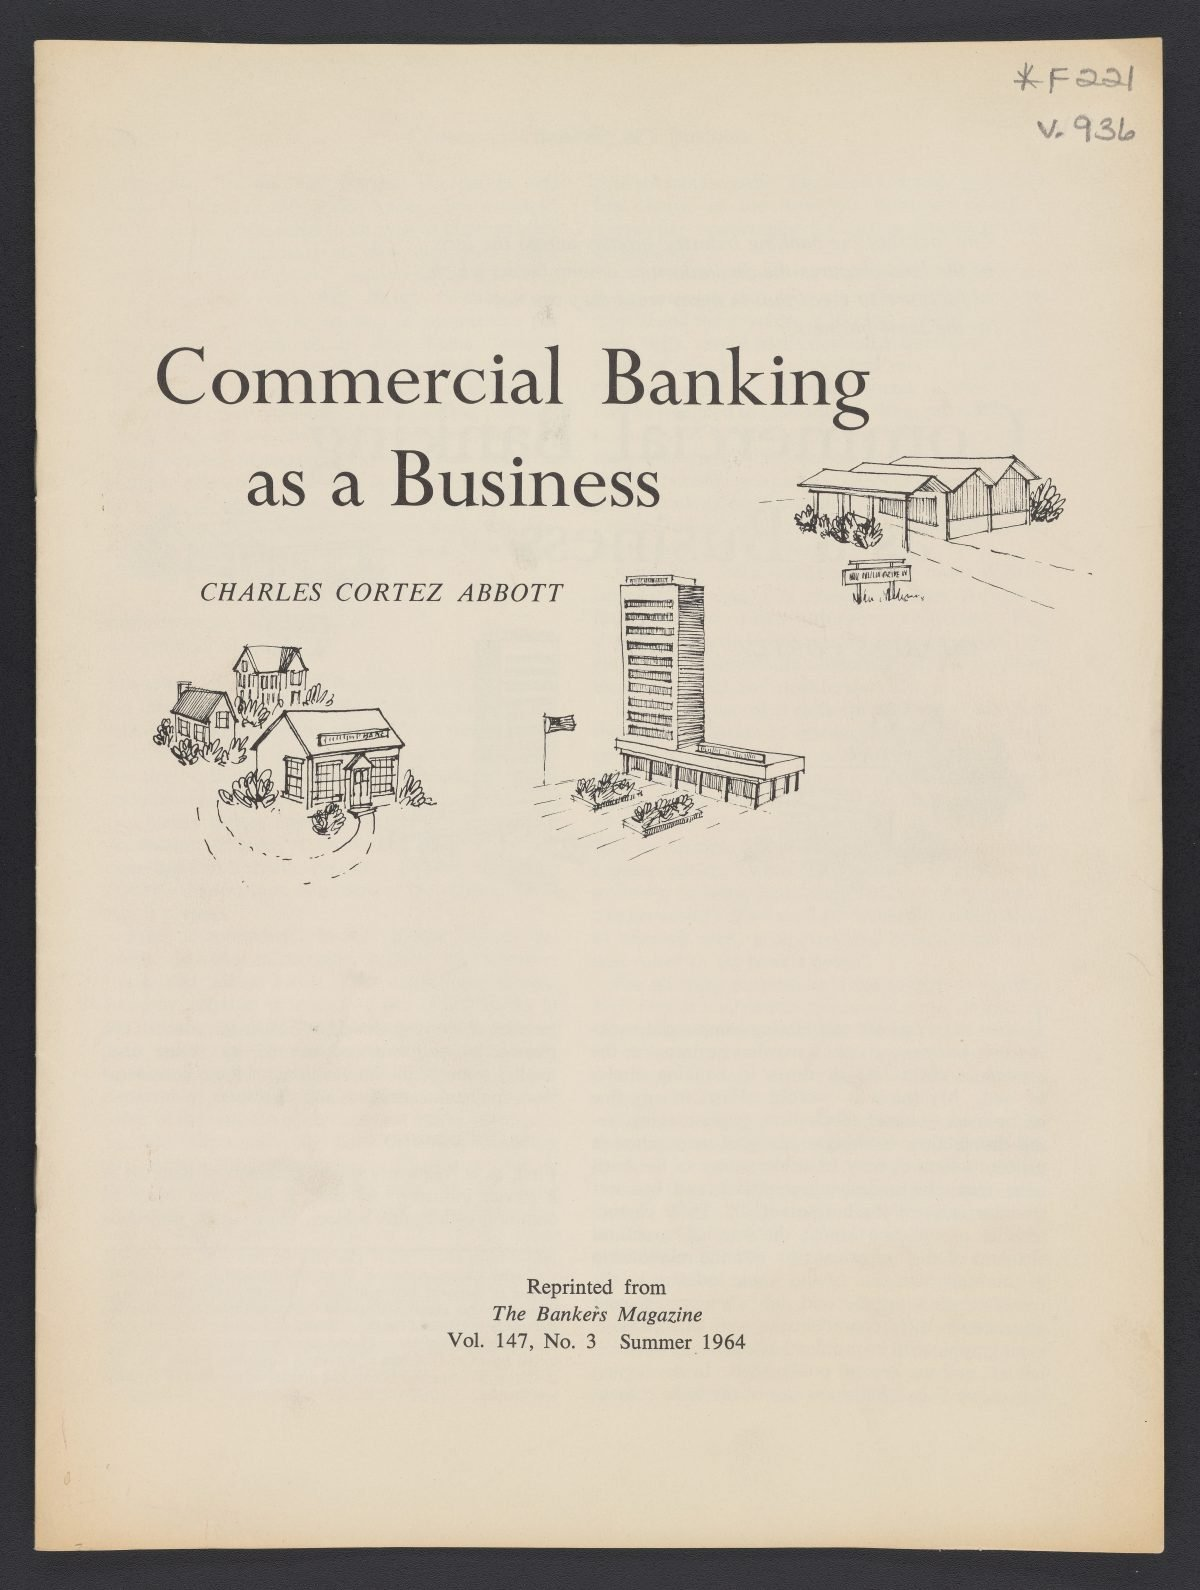 Commercial Banking as a Business